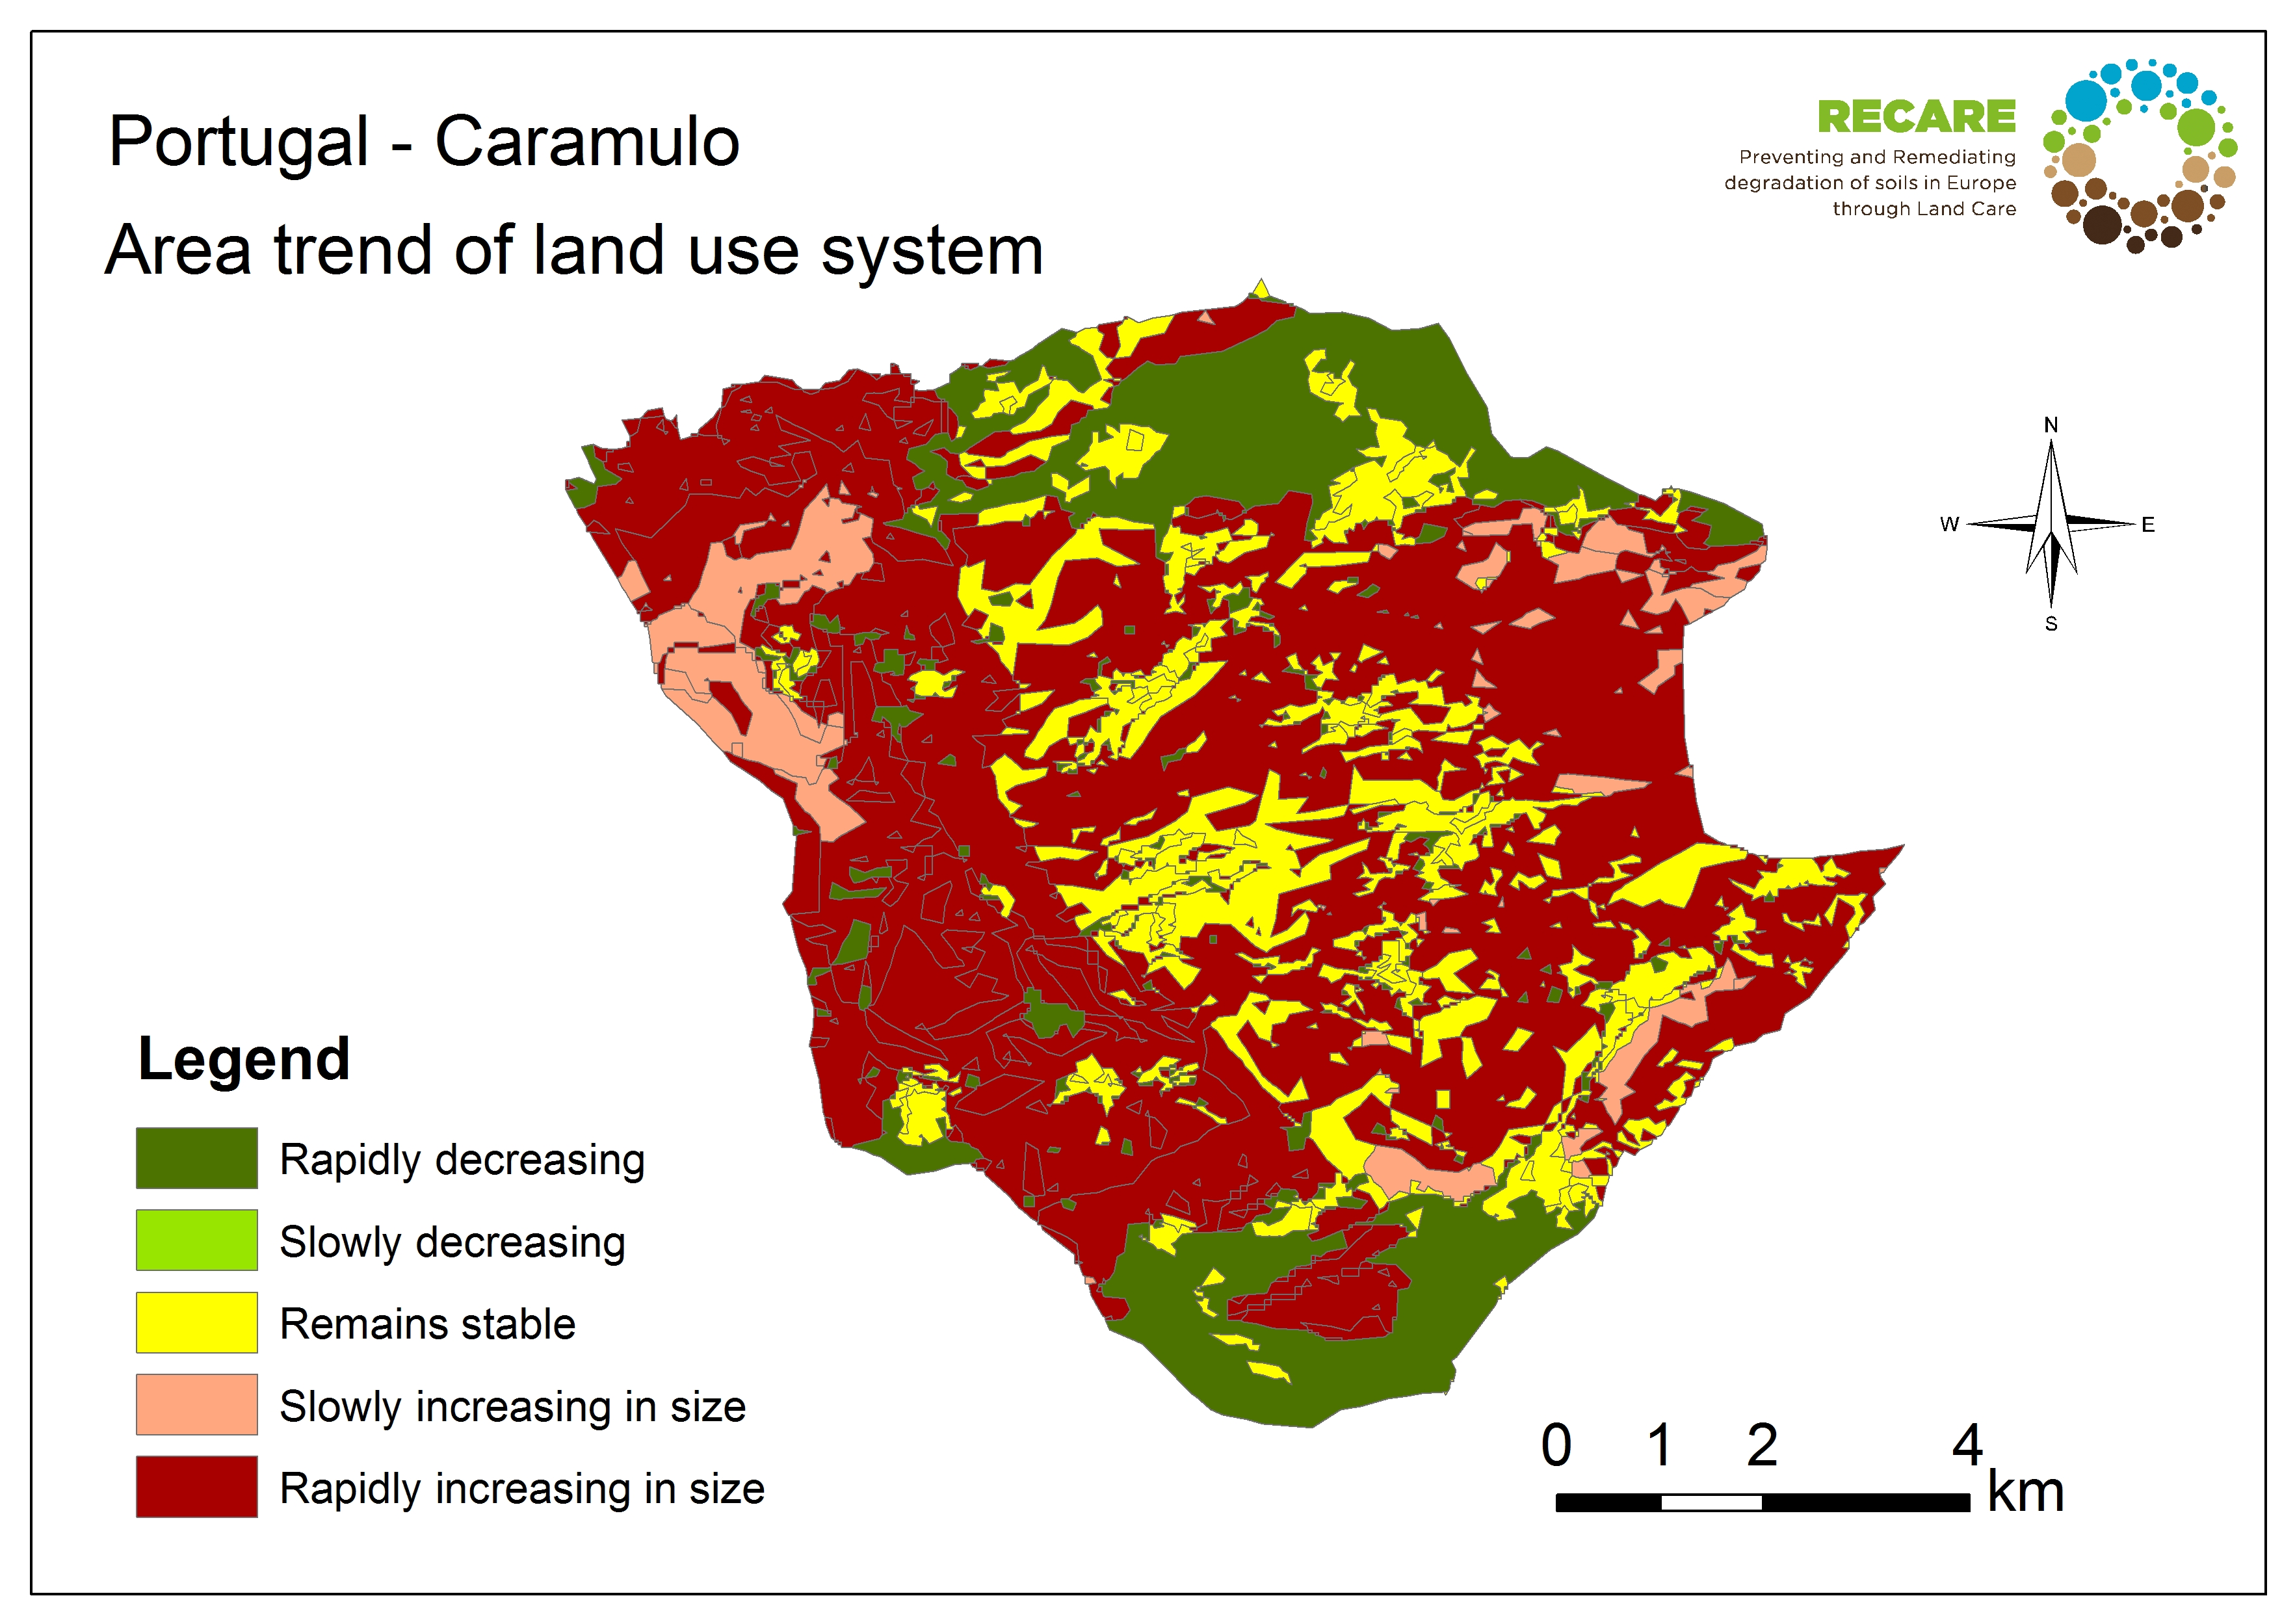 Portugal Caramulo area trend land use system